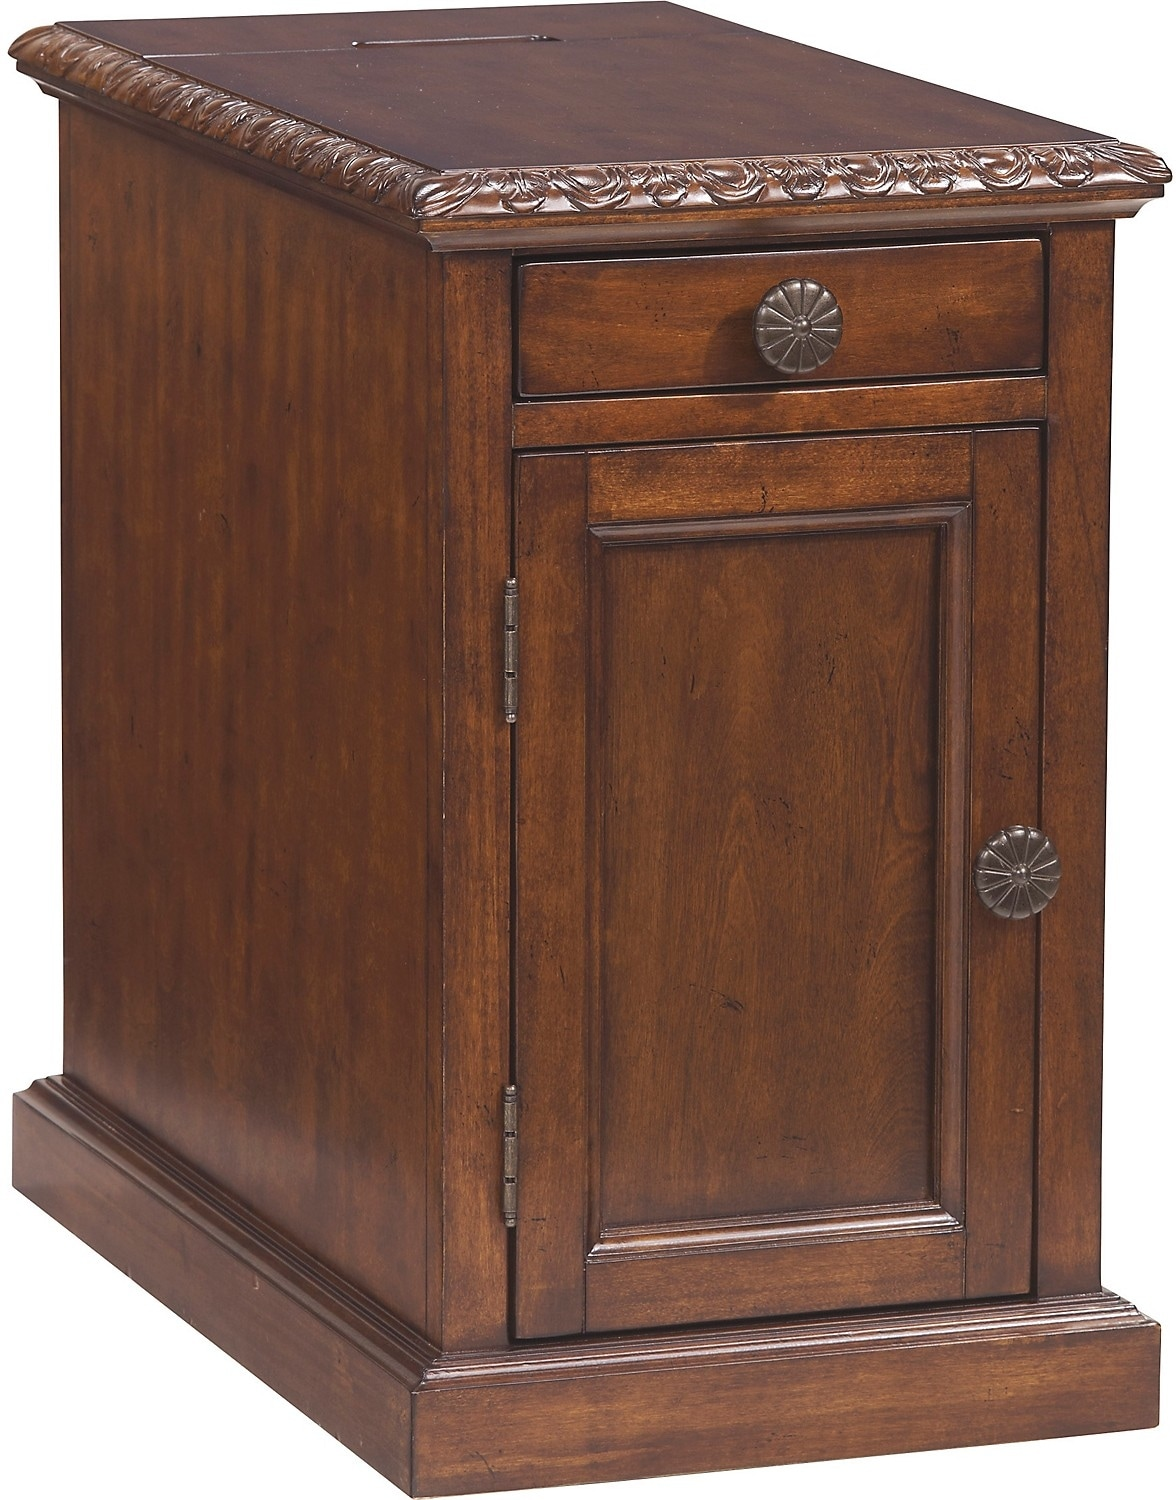 Coventry Accent Table – Ornate Brown